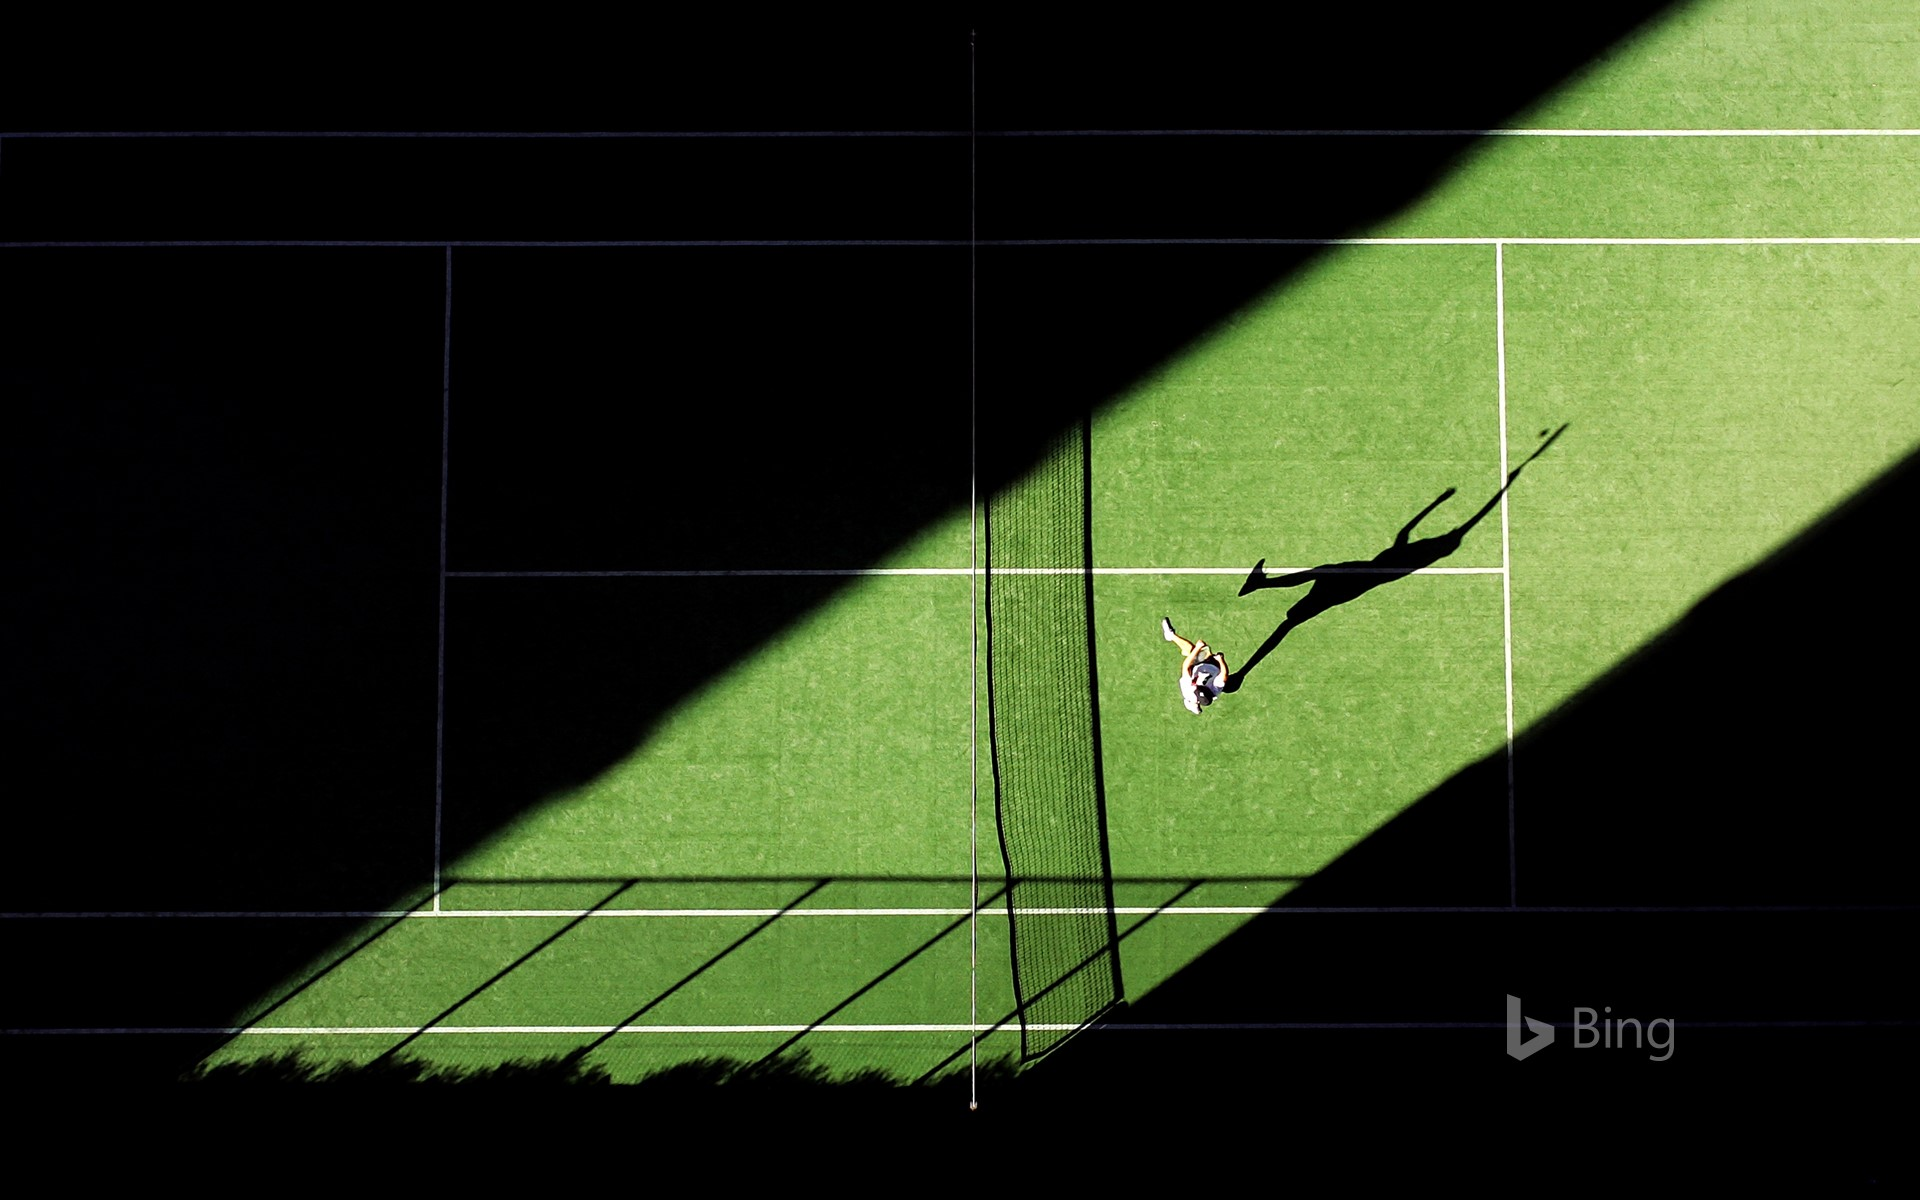 An aerial shot of a tennis match for the opening day of the 2019 Wimbledon Championships